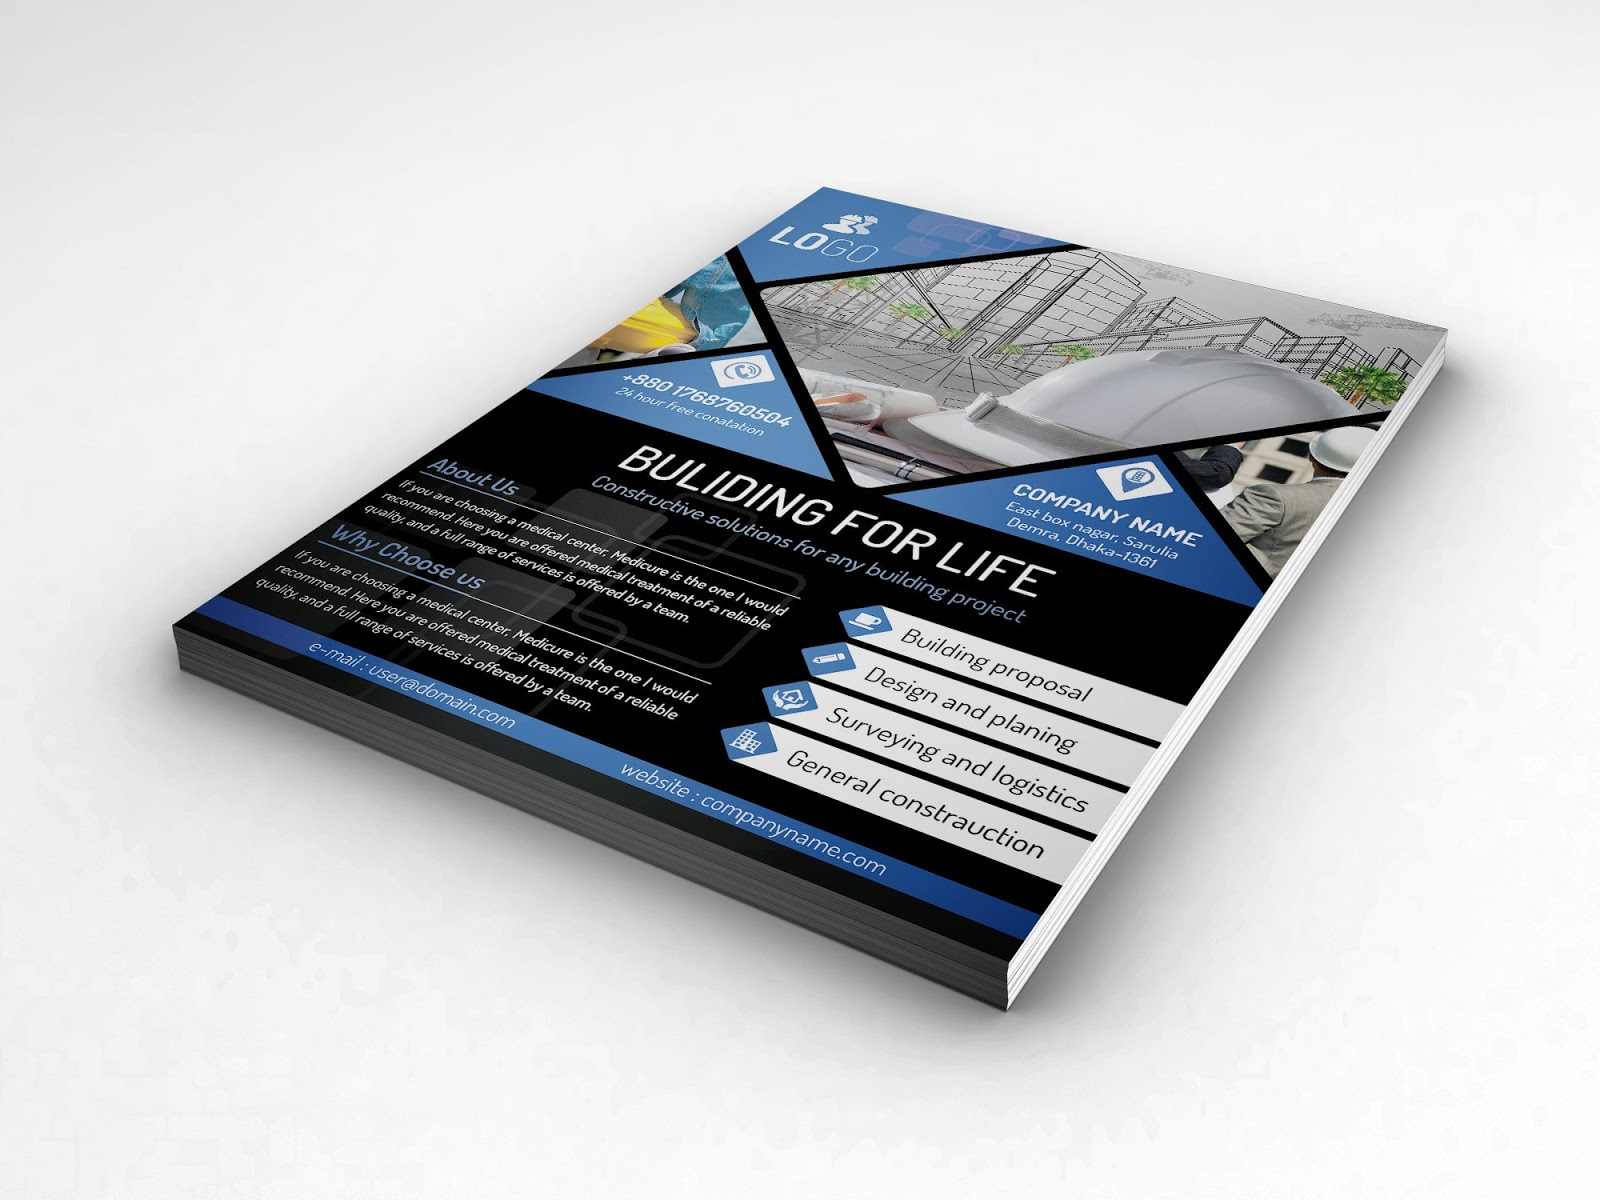 10 high quality free photoshop psd a4 flyerposter mockups graphic free photoshop psd flyer poster mockup download now reheart Choice Image